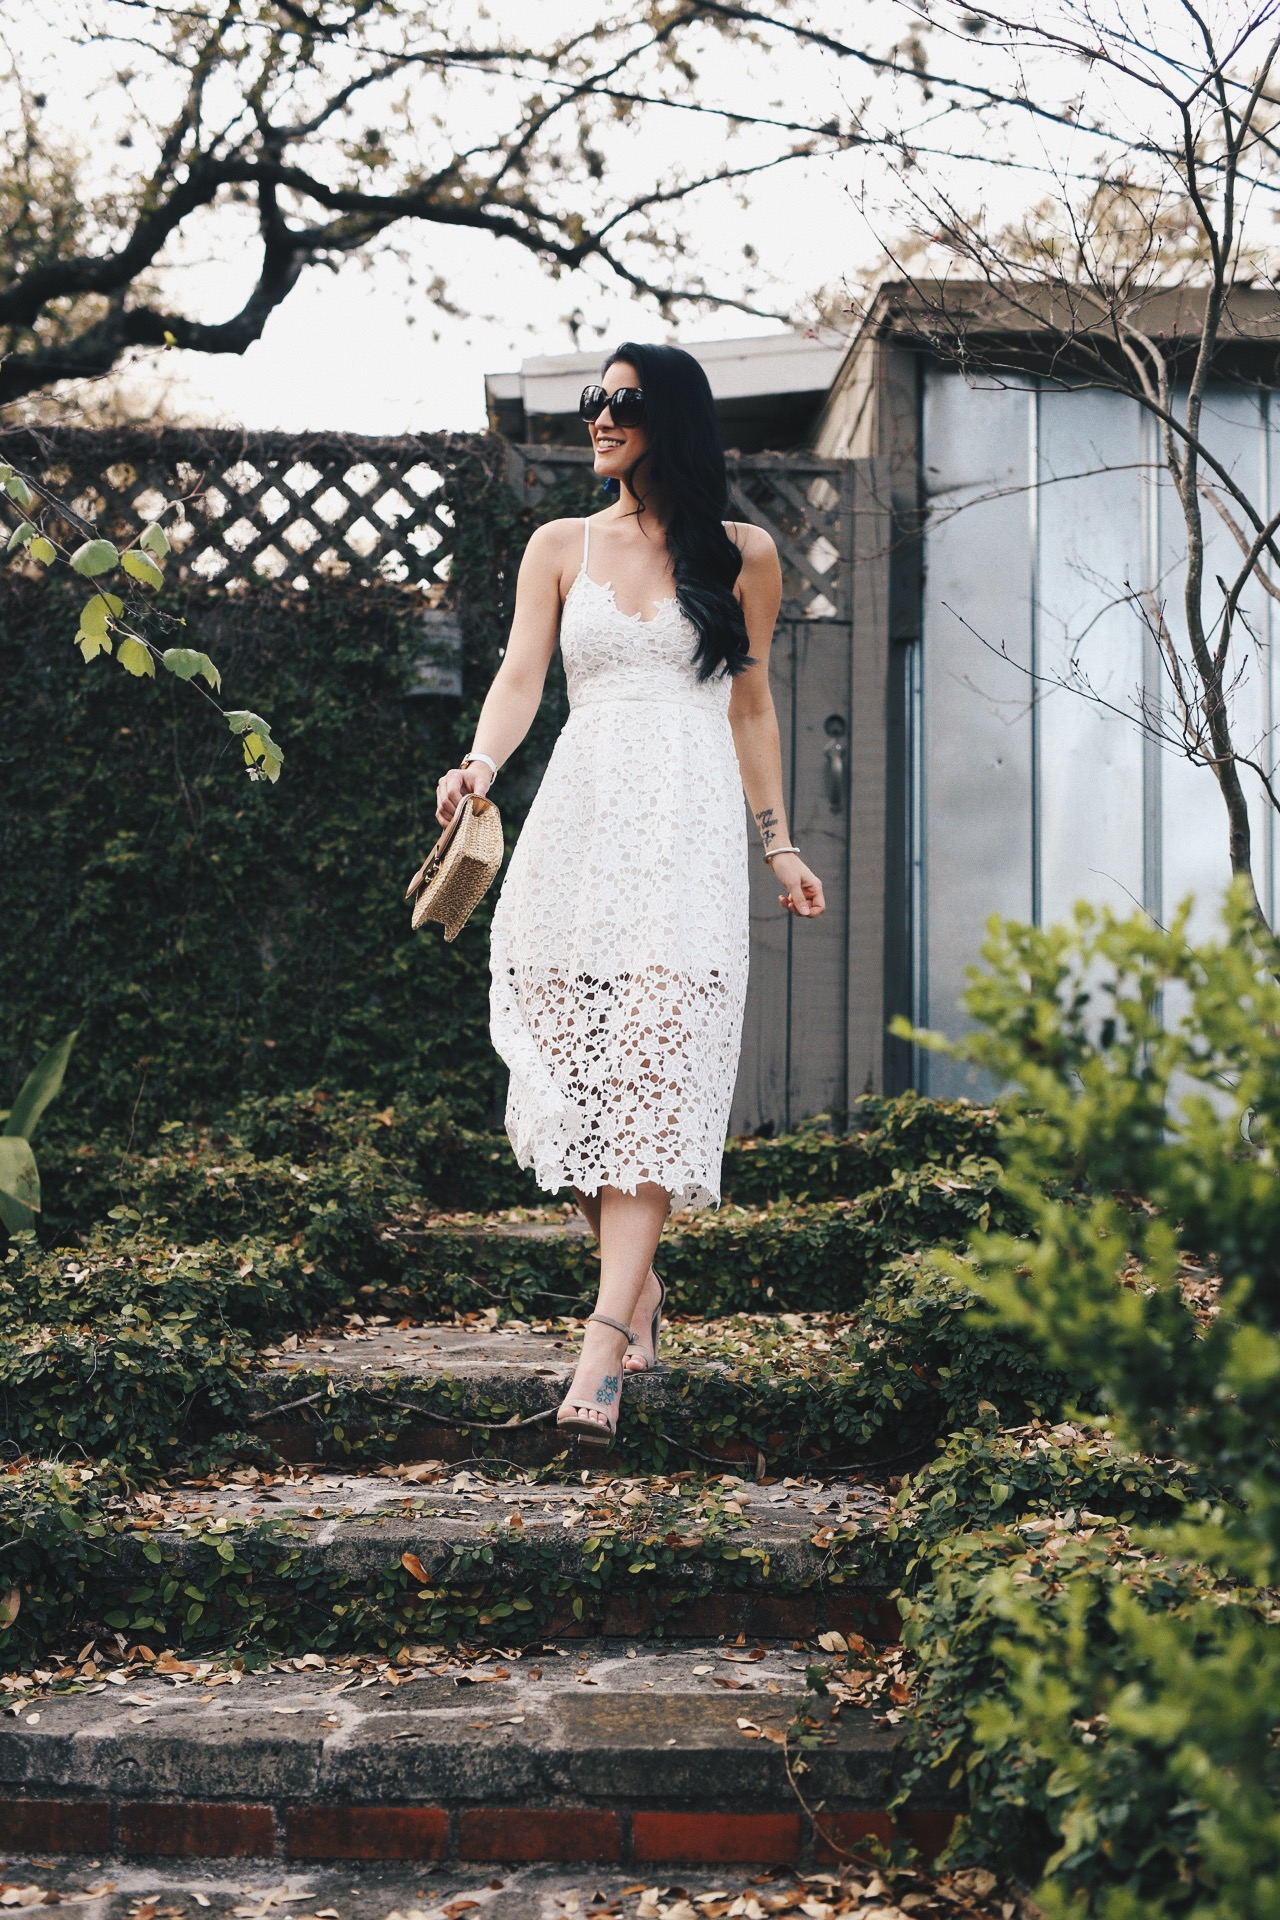 Cute Easter Dresses featured by top US fashion blog Dressed to Kill; Image of a woman wearing ASTR dress, Steve Madden shoes, H&M handbag, Marc Jacobs watch, Baublebar earrings, David Yurman bracelet and Nordstrom sunglasses.